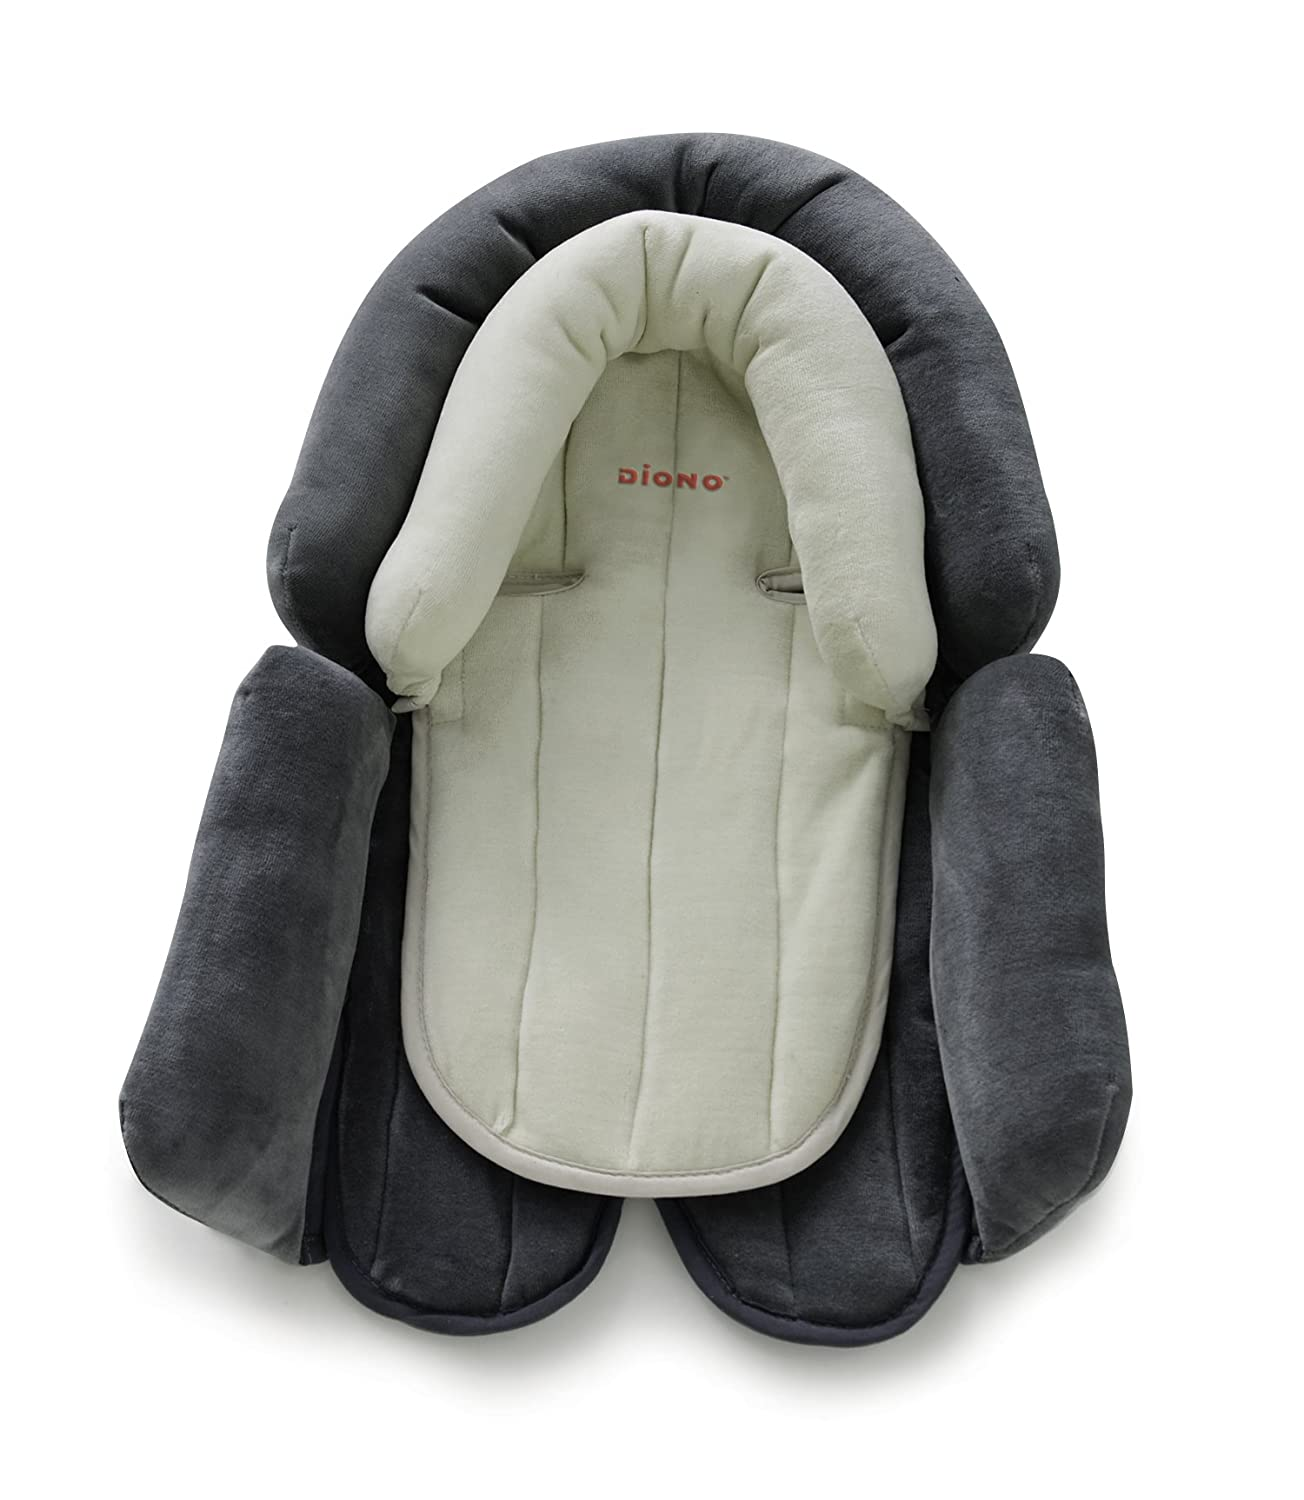 Diono Cuddle Soft Baby Body Support